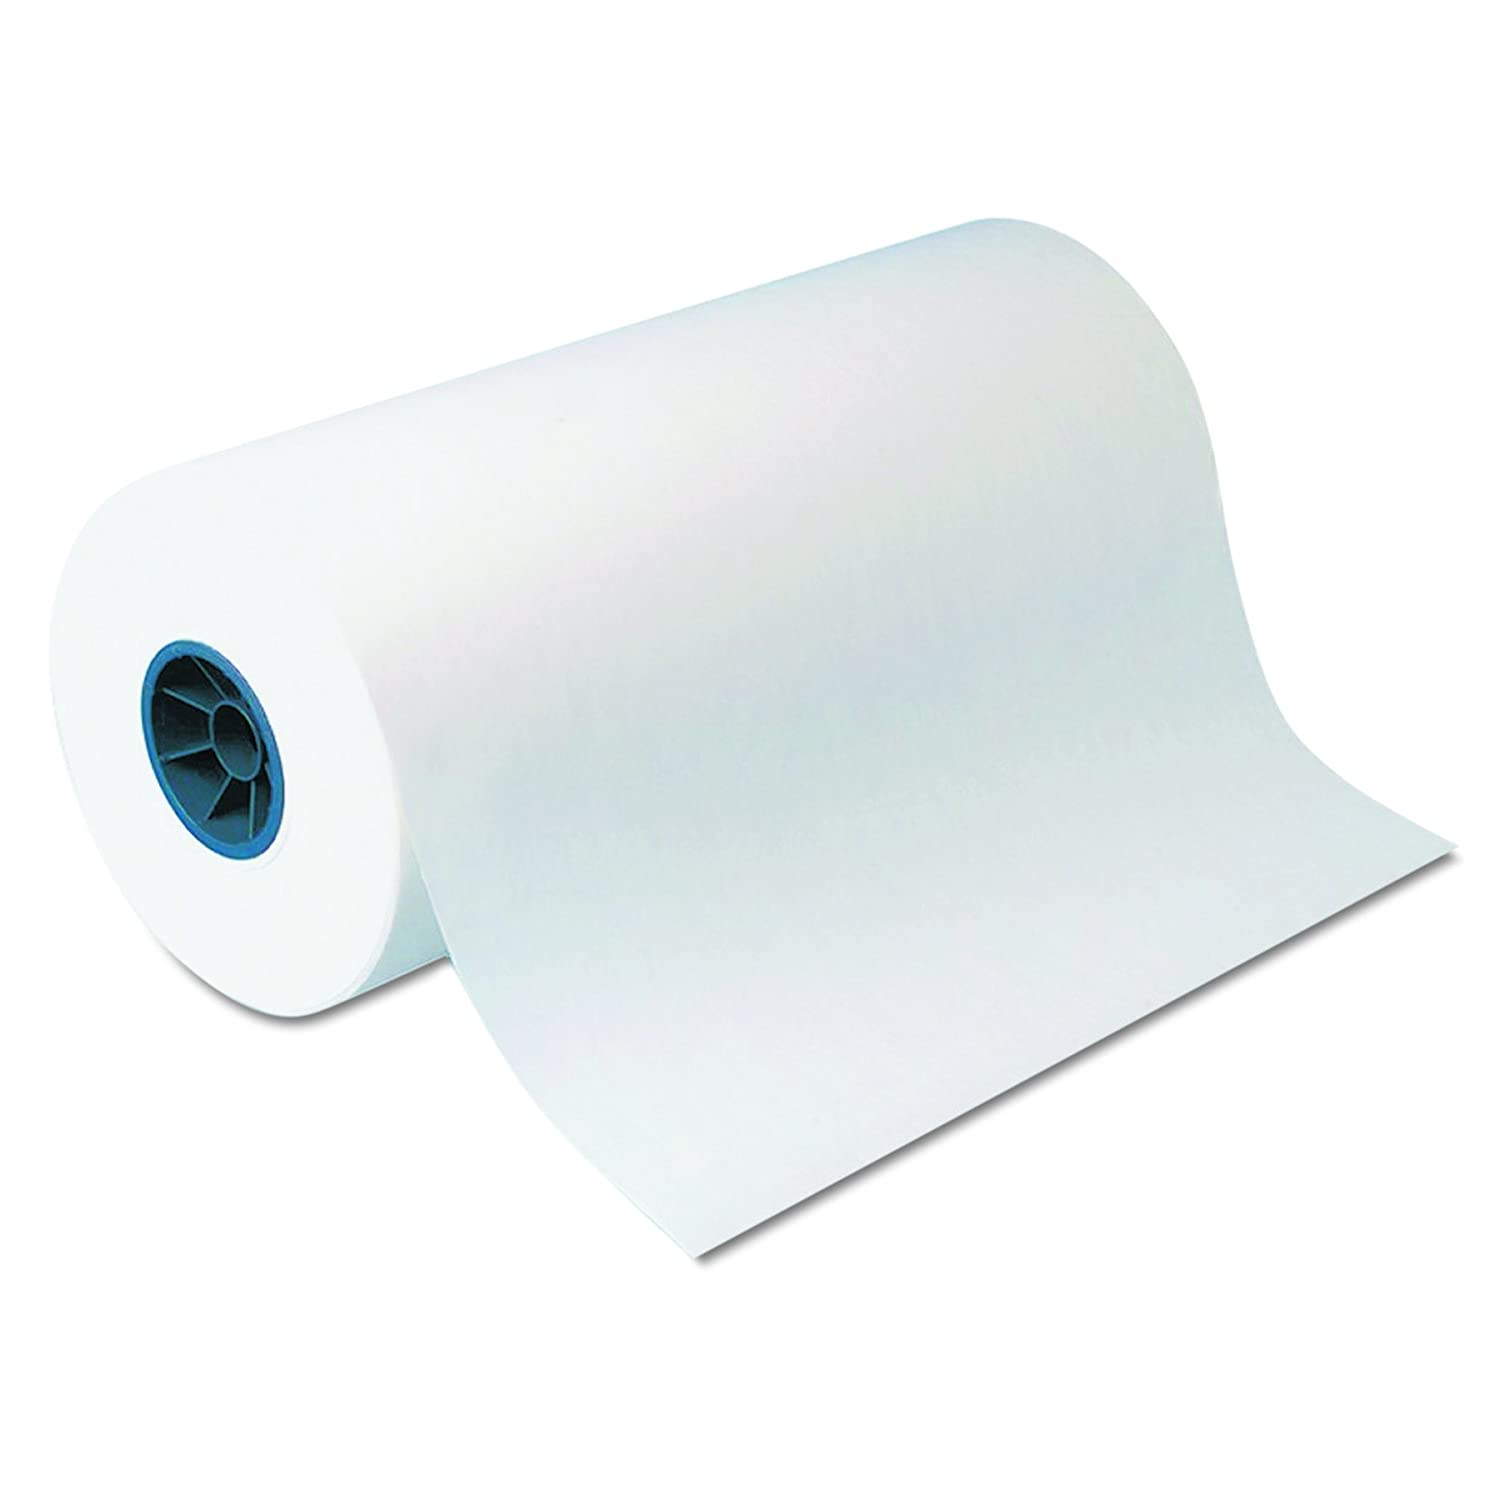 Dixie Kold-Lok 18in Polyethylene-Coated Freezer Paper Roll with Short Term Protection (3-6Mo), KL18, White (1 Roll @ 18in x 1100ft)